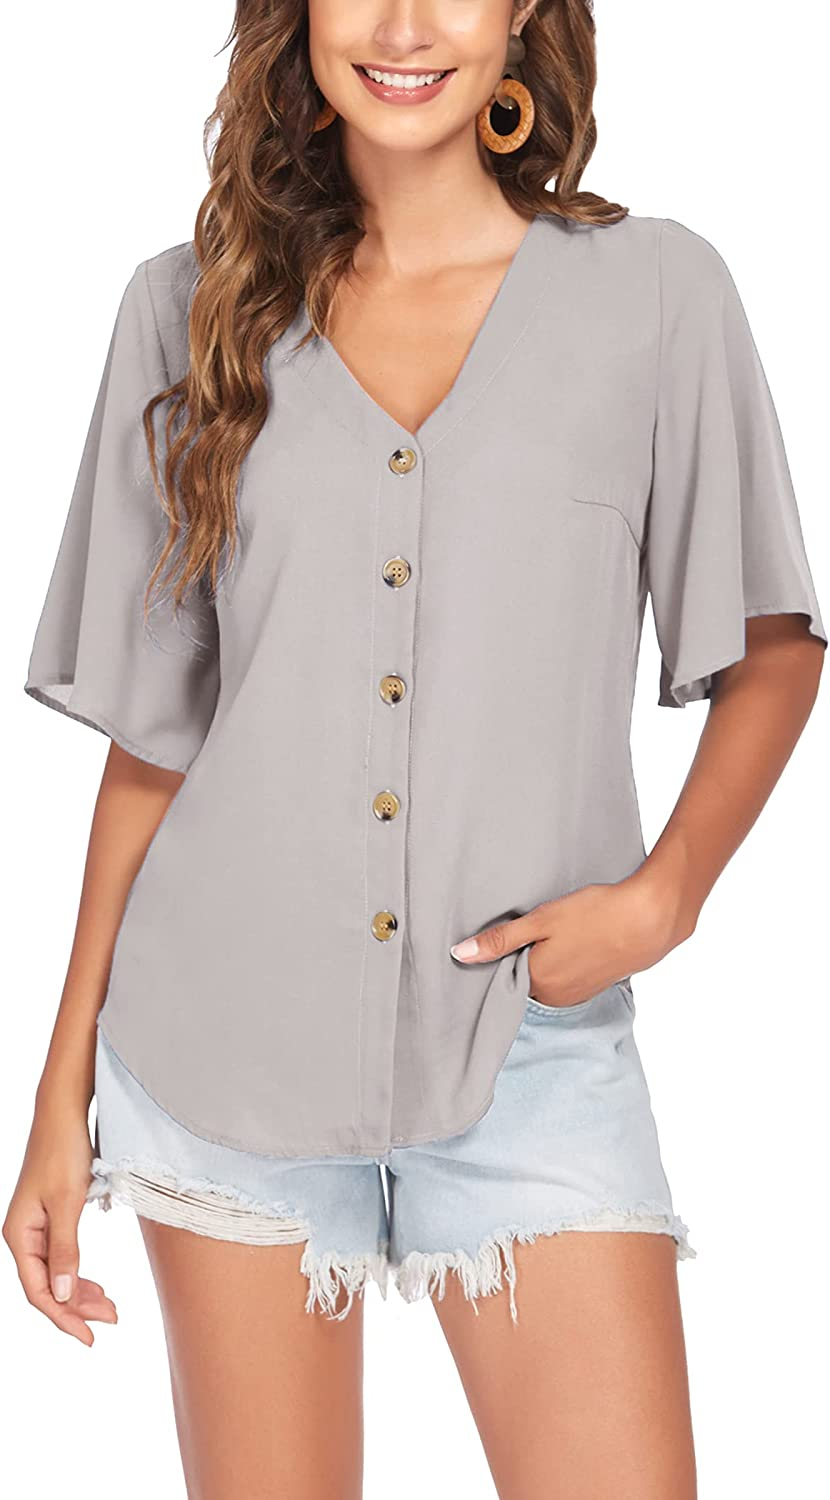 Meaneor Womens V Neck Button Down T Shirts Loose Short Sleeve Chiffon Blouse Summer Casual Tops S-XXL